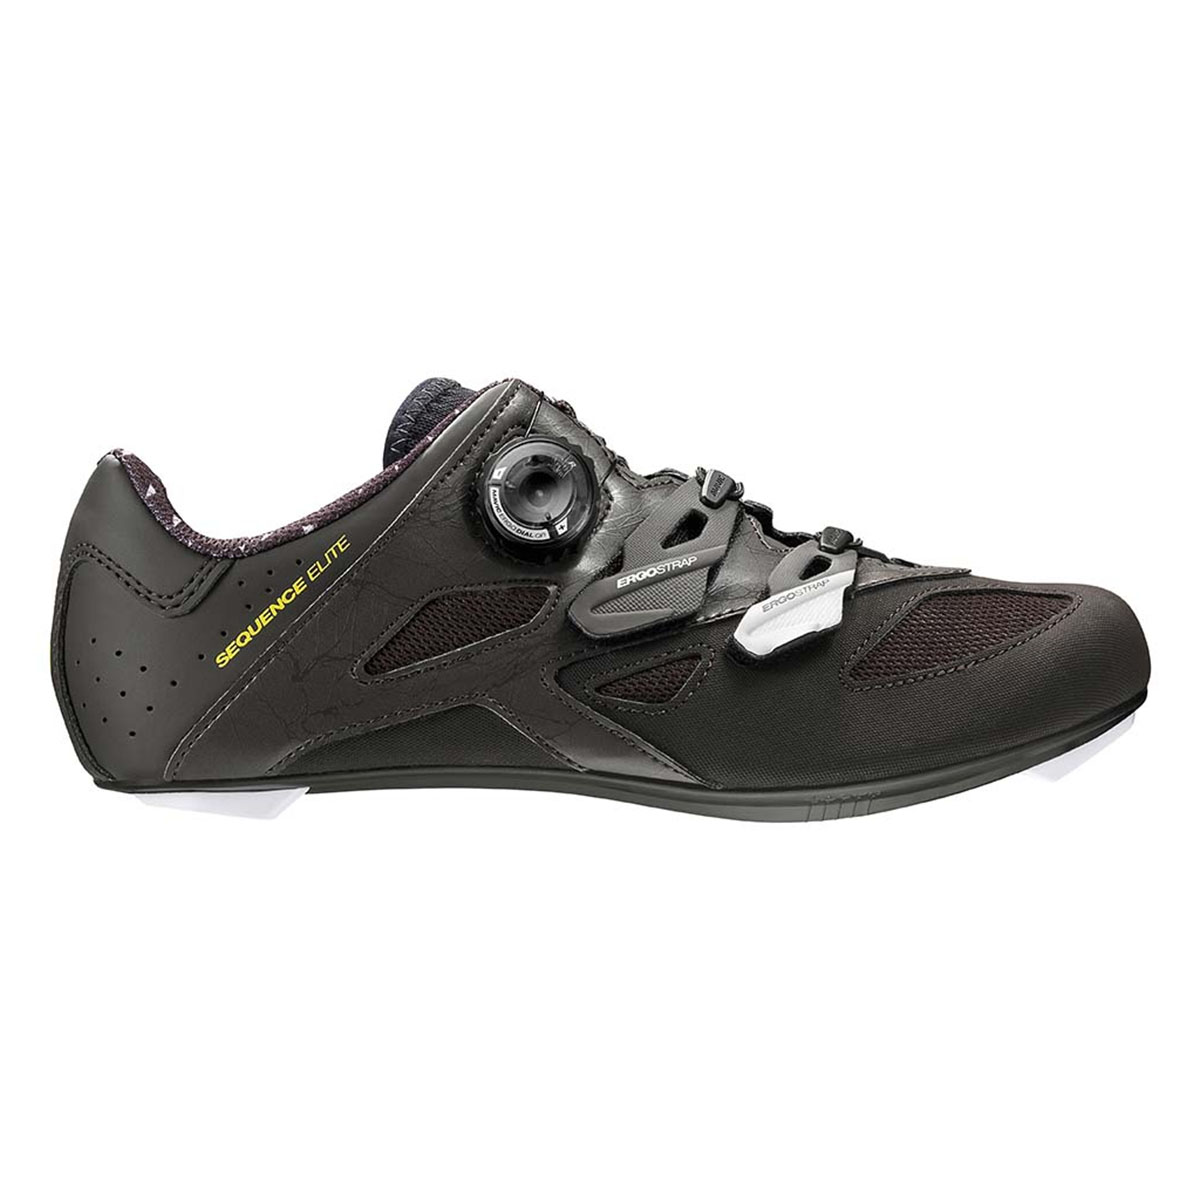 CHAUSSURES MAVIC ROUTE SEQUENCE ELITE FEMME